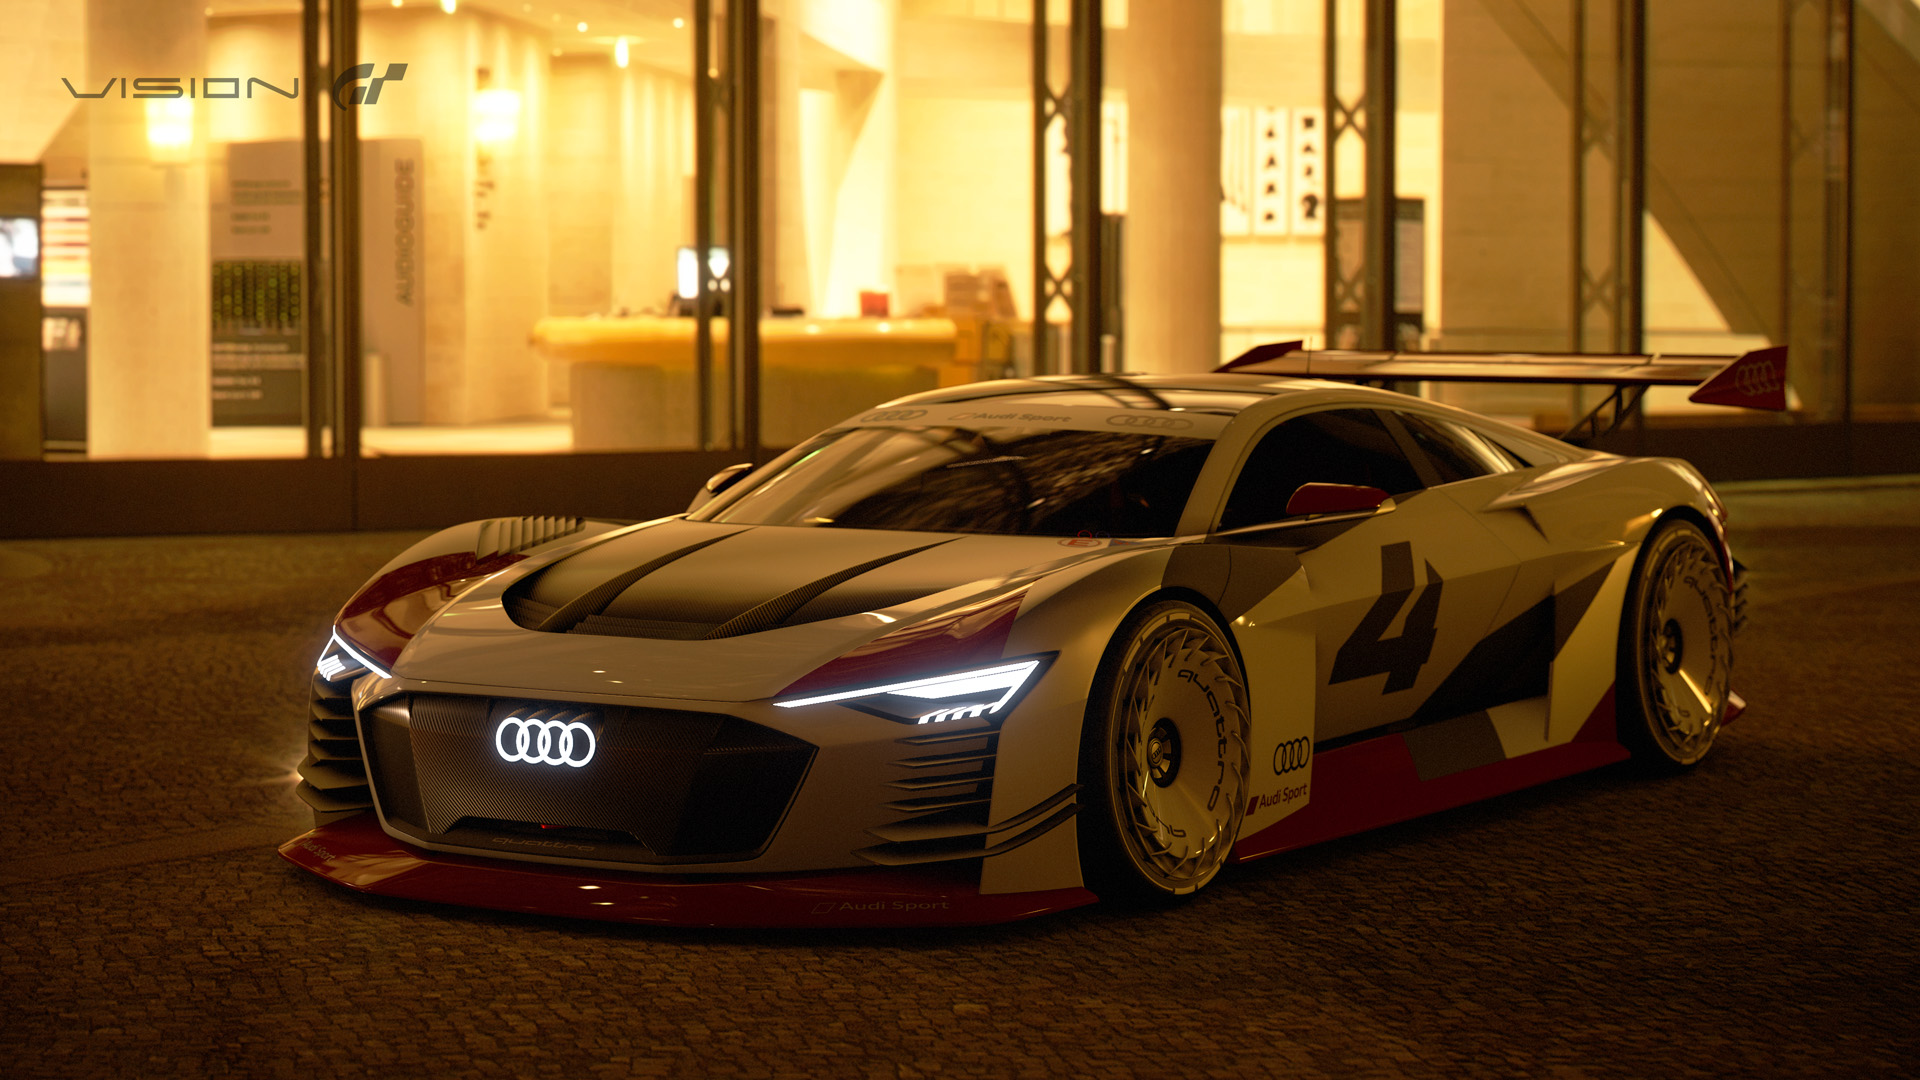 Gta V Car Wallpaper Audi Introduces Two New Vision Gran Turismo Cars The